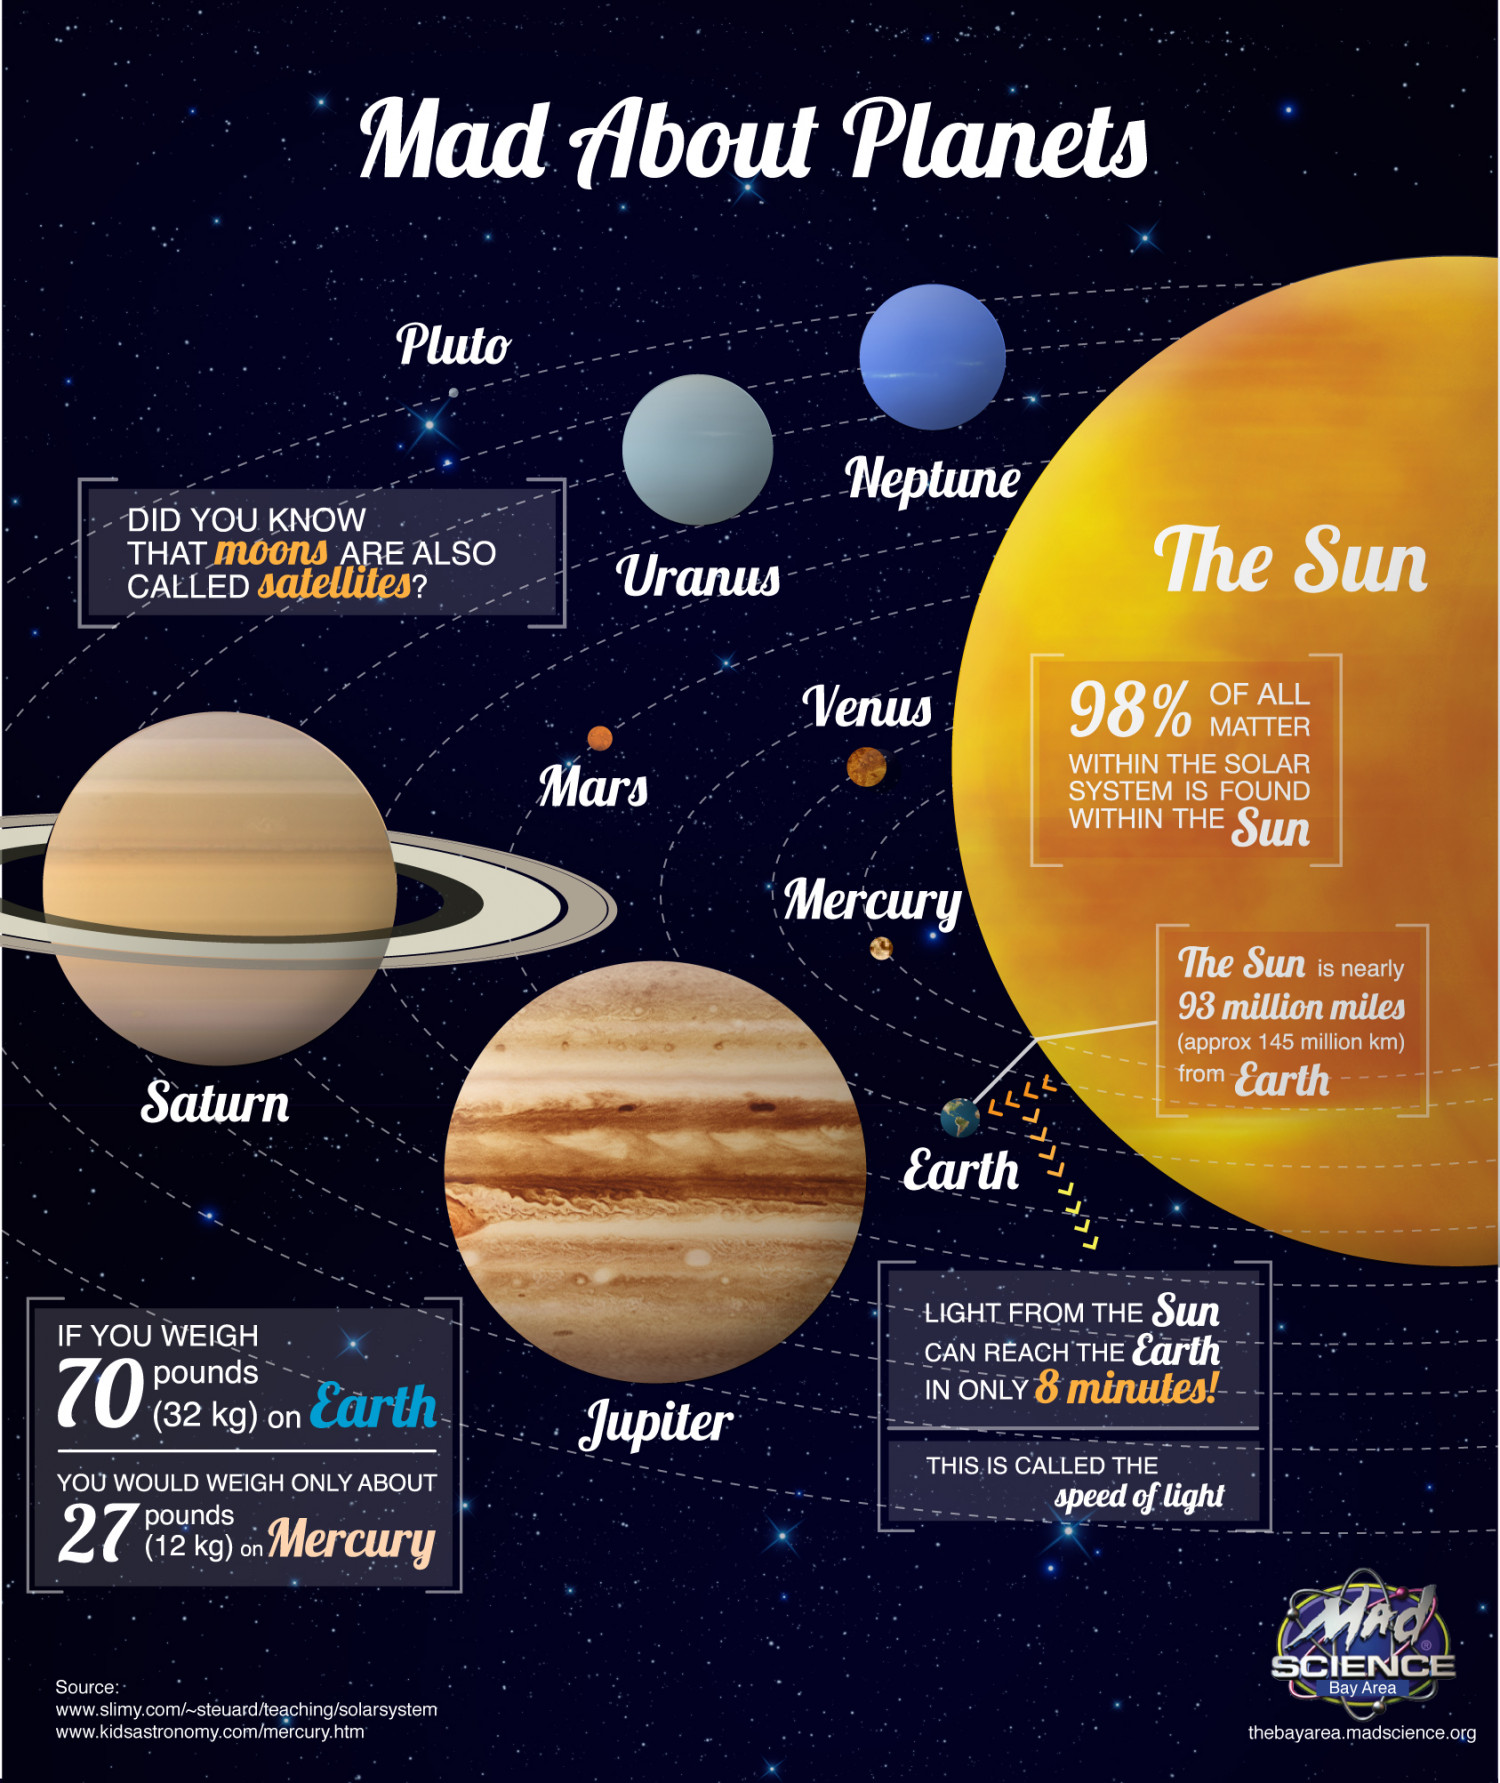 Mad About Planets Infographic